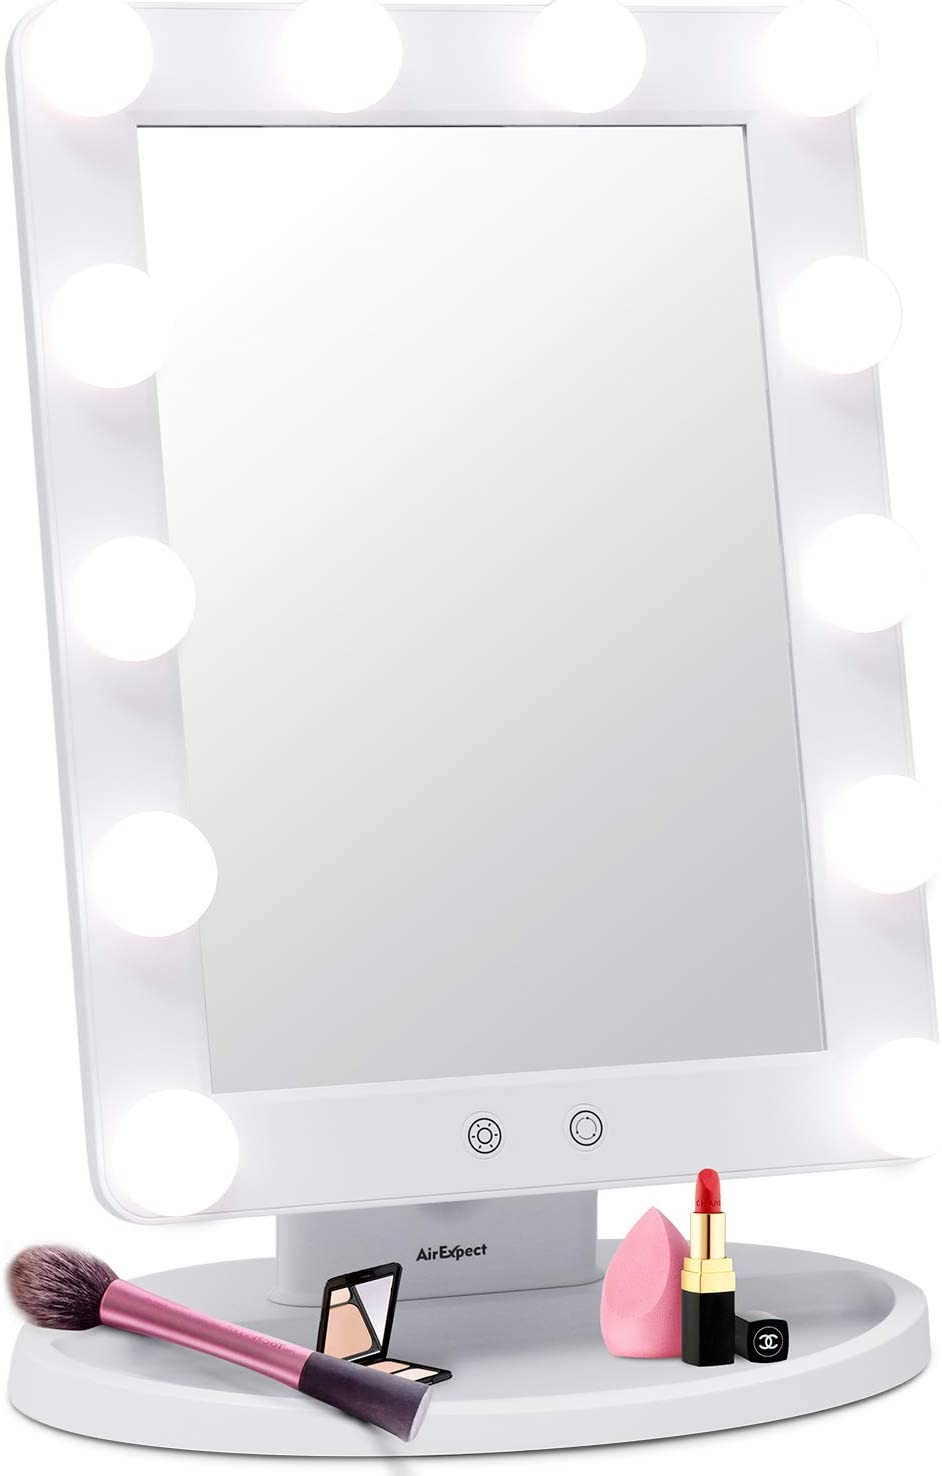 AirExpect Makeup Vanity Mirror with Light Bulbs – 3 Color Lighting Modes Hollywood Style Tabletops Lighted Cosmetic Mirror with 12 Dimmable LED Bulbs and Touch Control Design